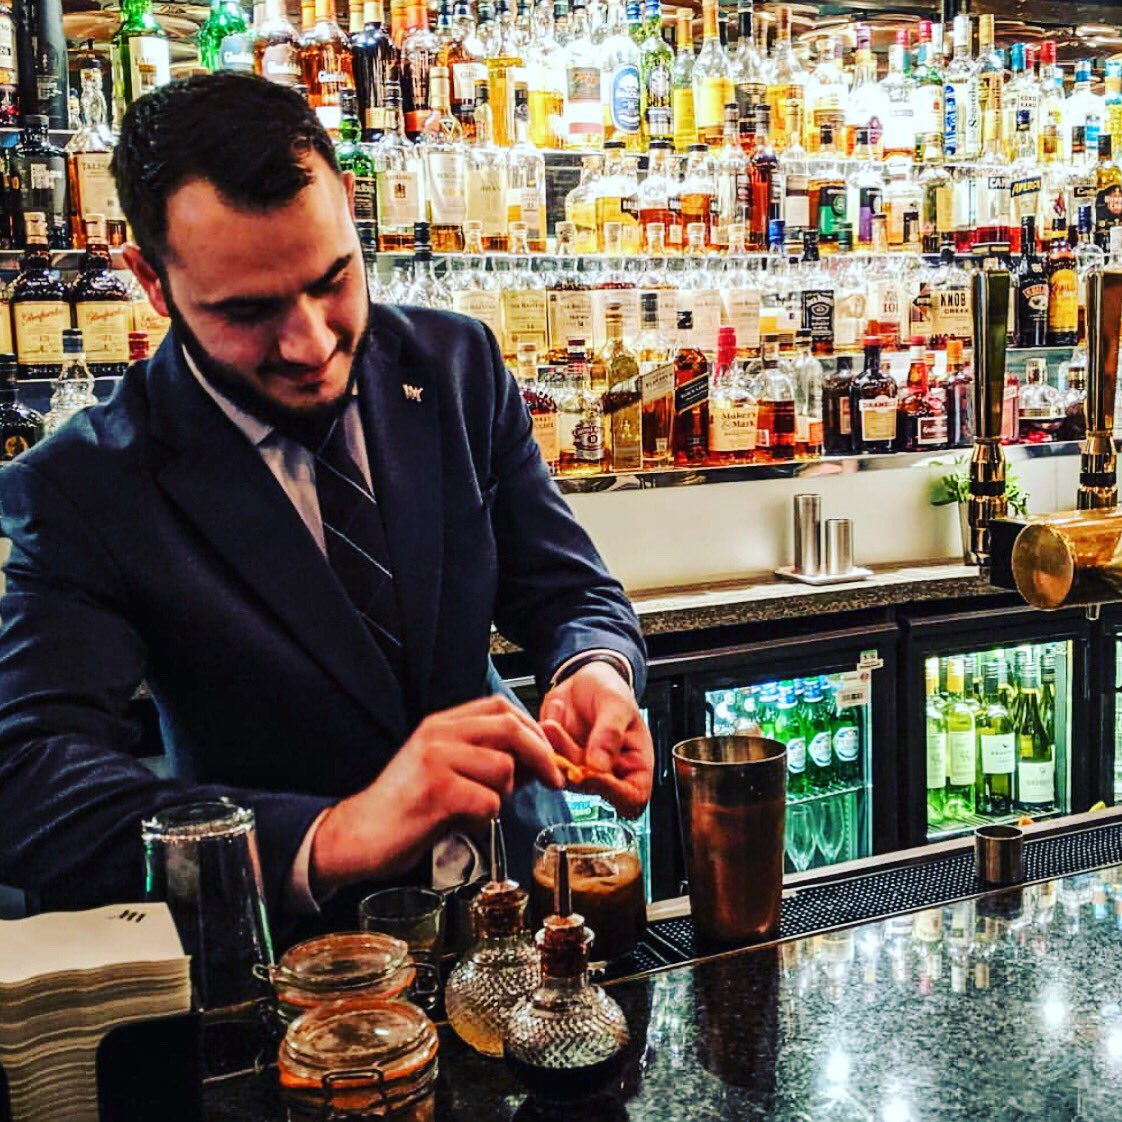 Relax in The Caley Bar a whisky oriented bar located within the @WAEdinburgh 🥃 #hiddengems #edinburghswestend #edinburgh #visitscotland #edinburghwows #scotland